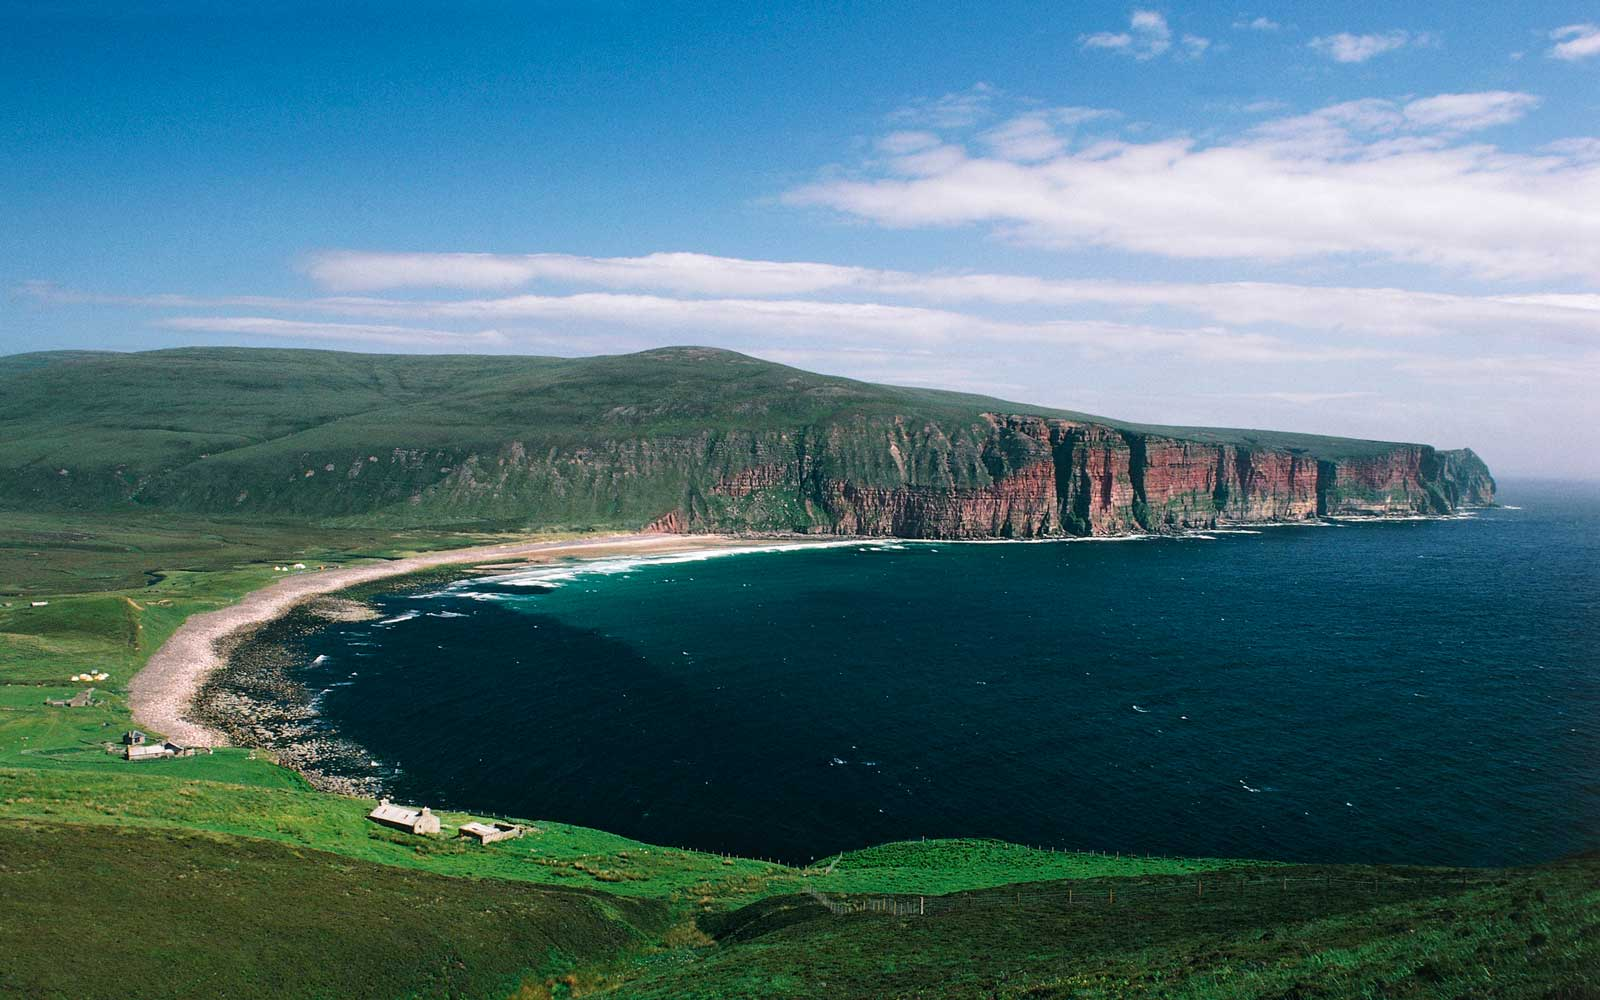 13. Orkney Islands, Scotland